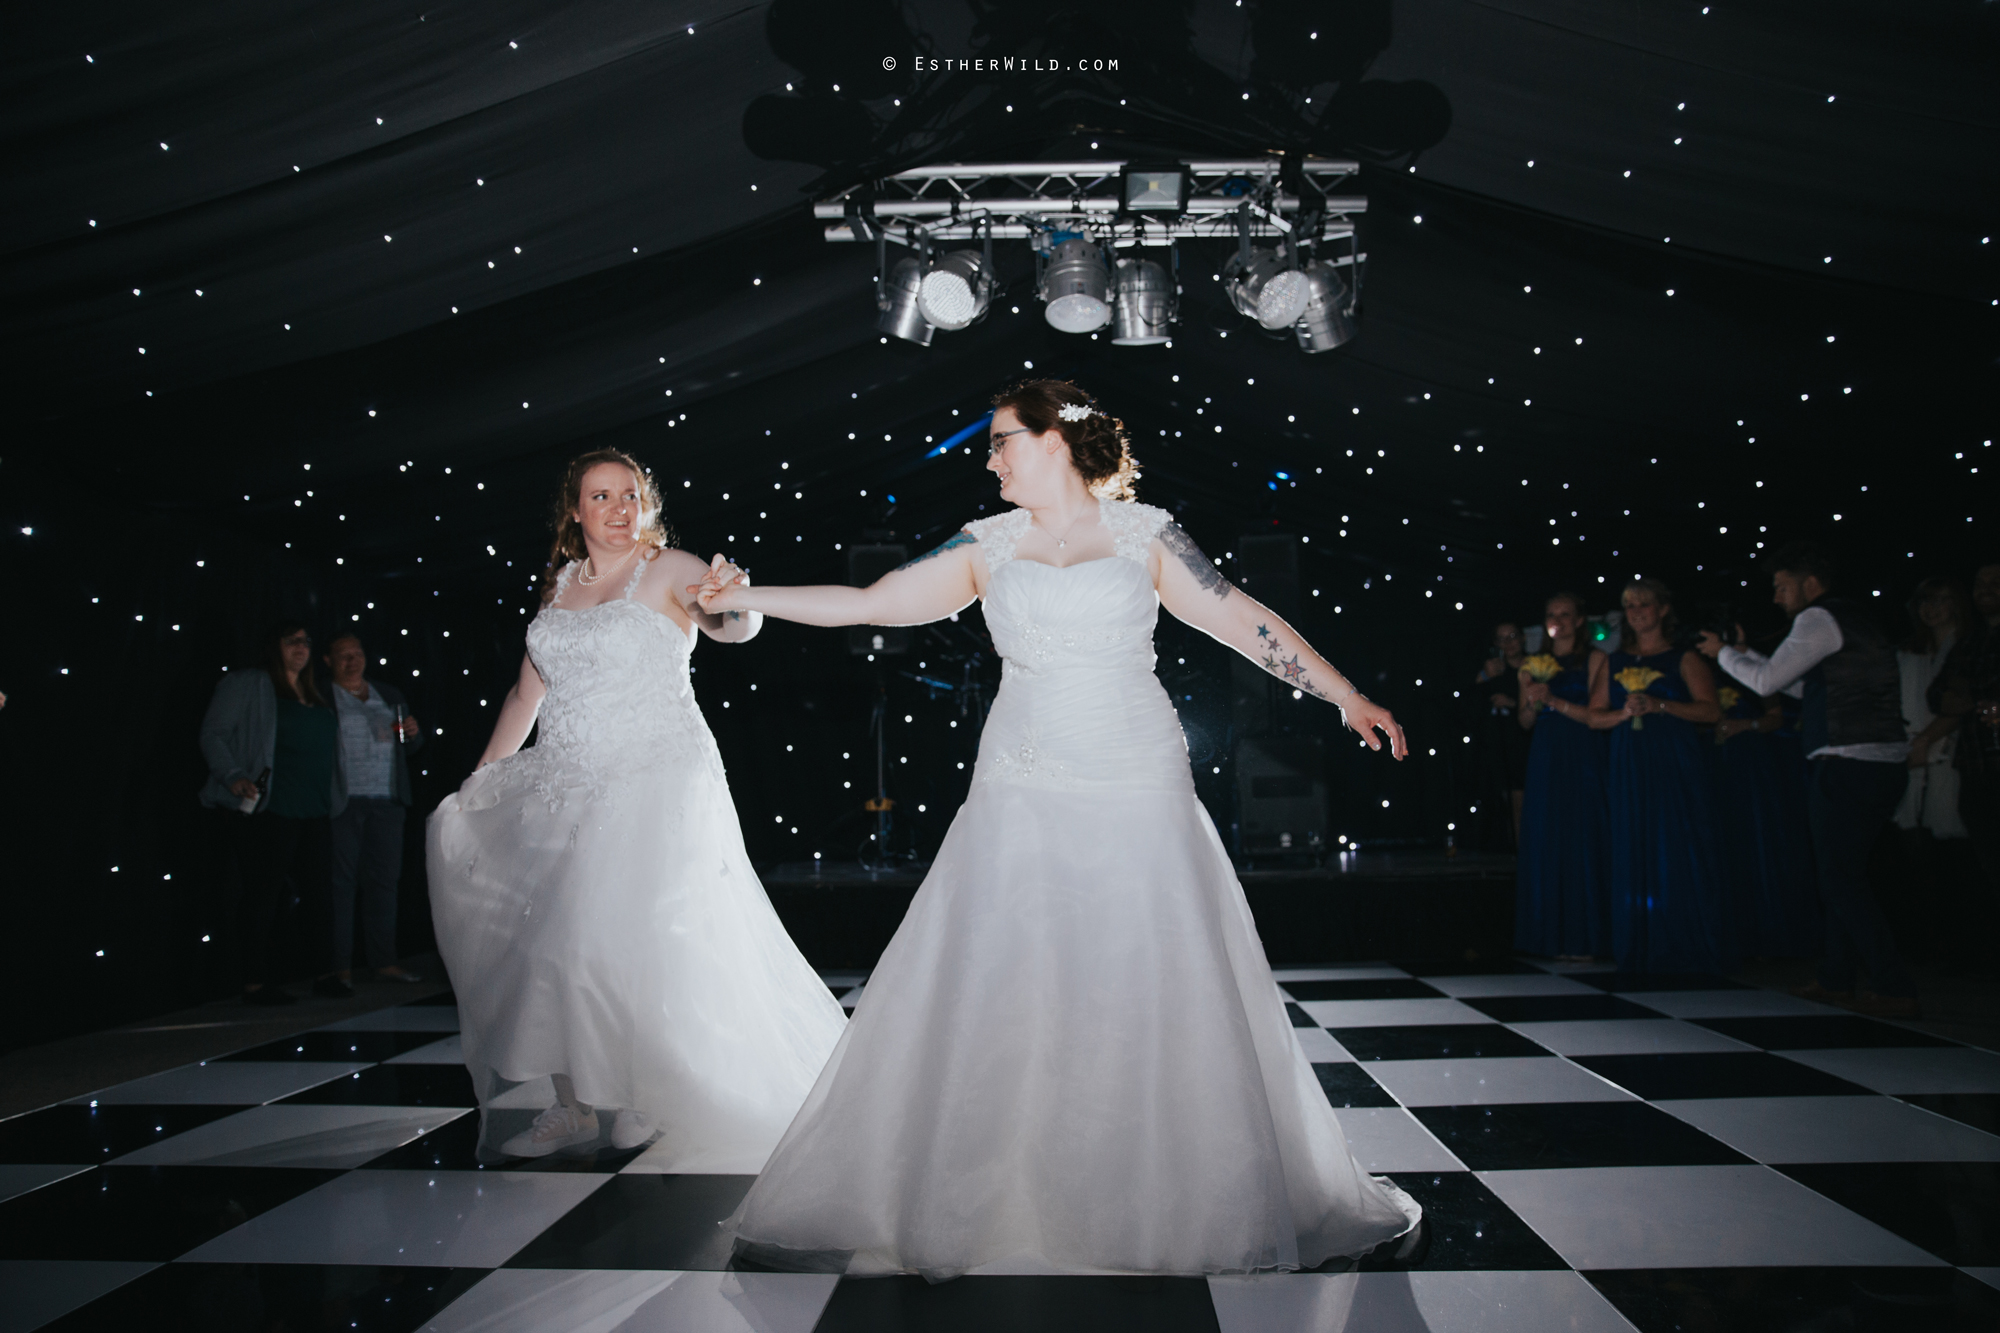 Old_Hall_Ely_Wedding_Esther_Wild_Photographer_IMG_2923.jpg